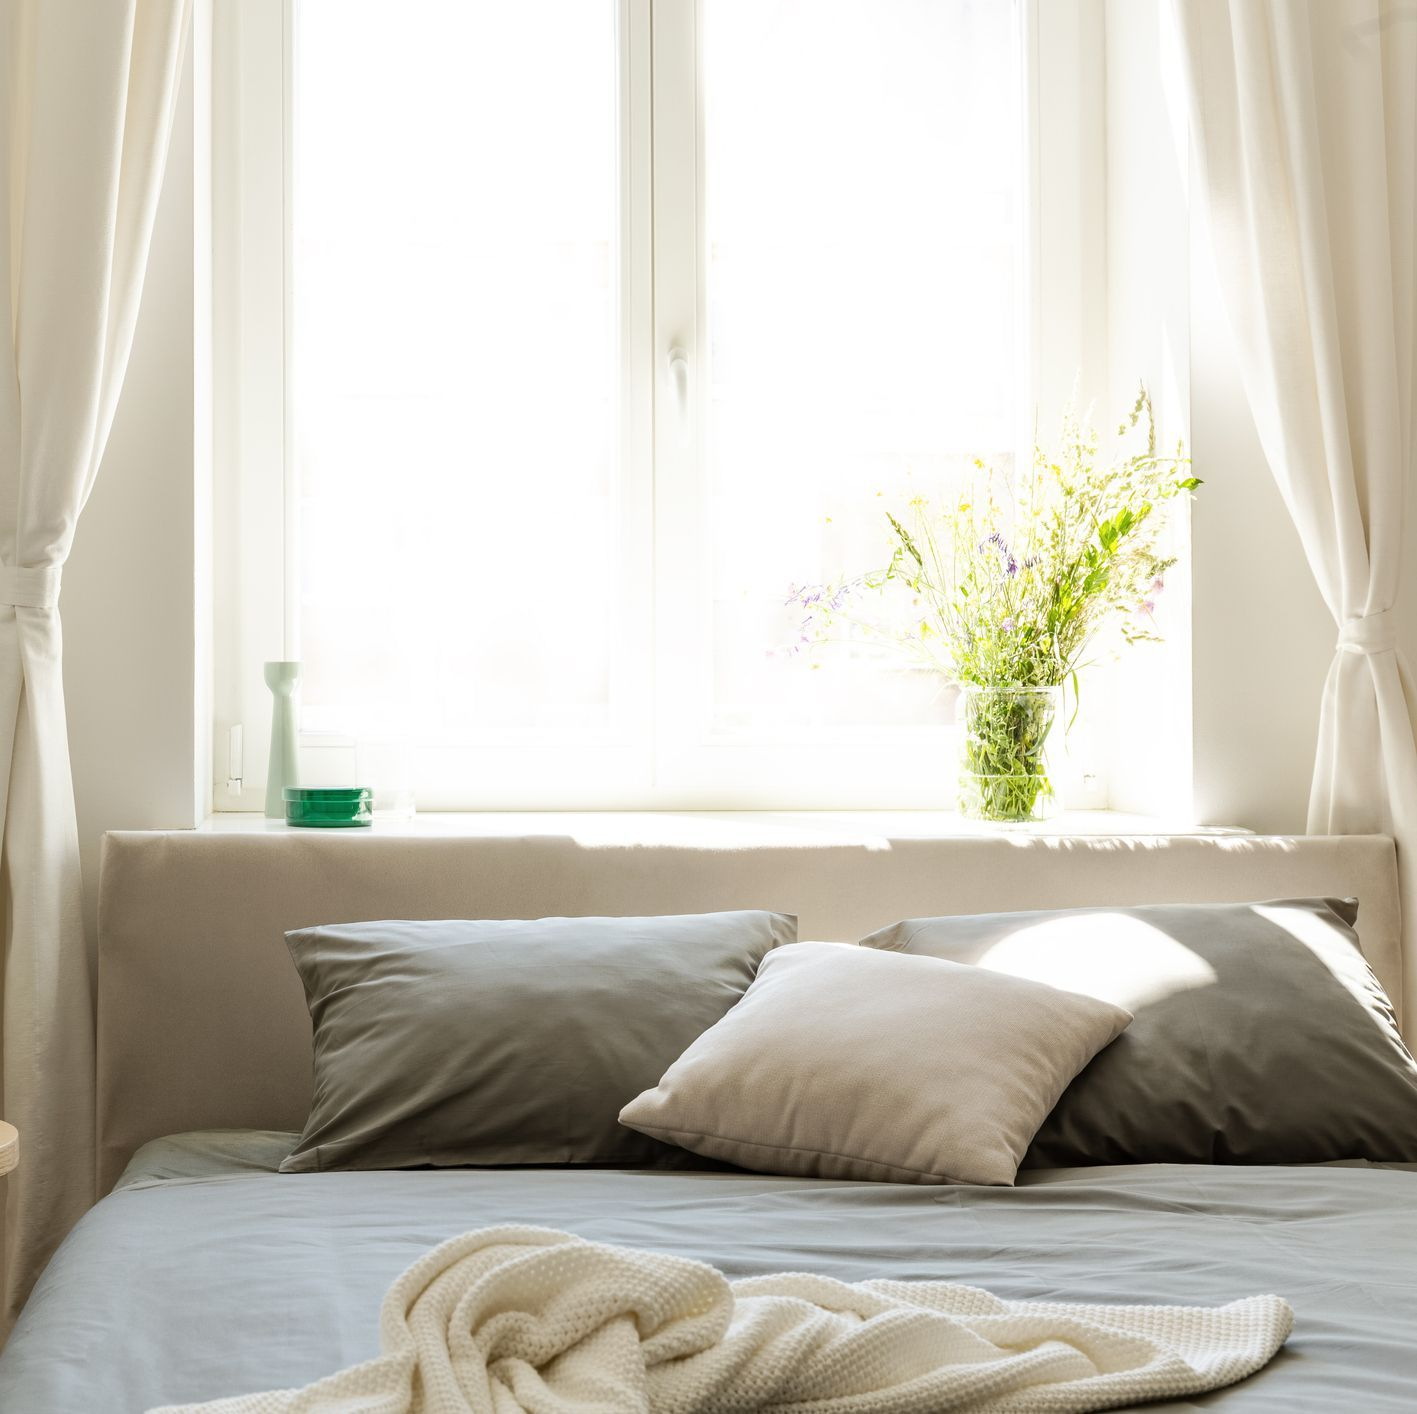 Night Sweats? These Cooling Mattress Pads Are an